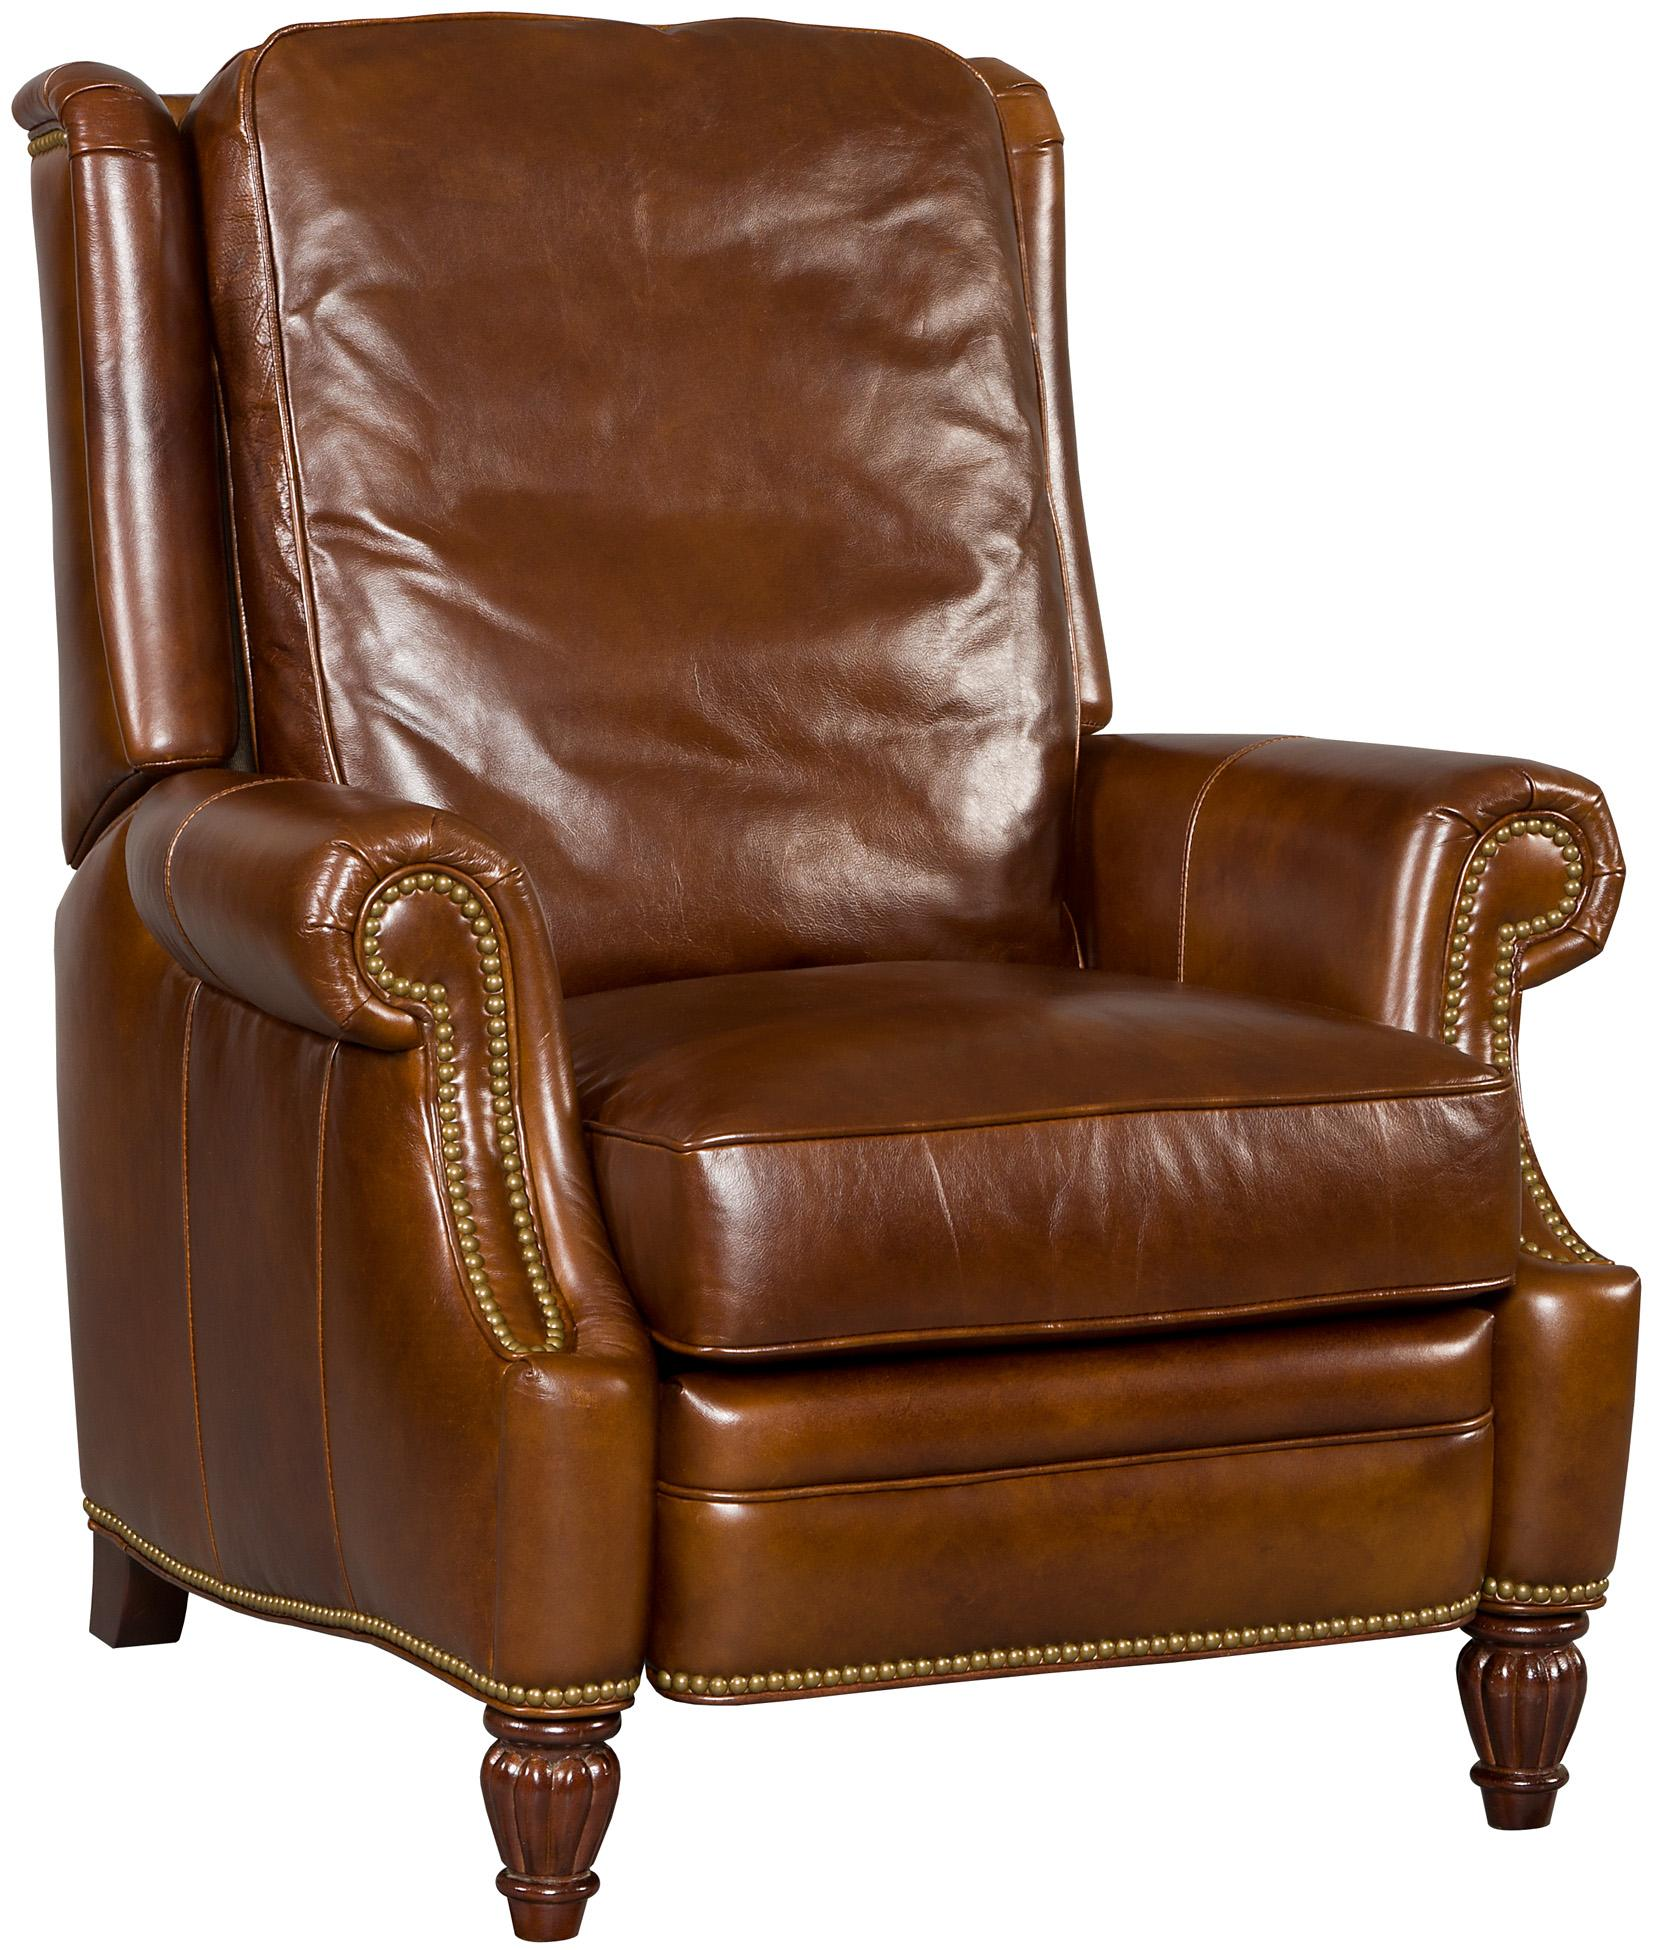 Hooker Furniture Reclining Chairs Recliner - Item Number: RC254-088